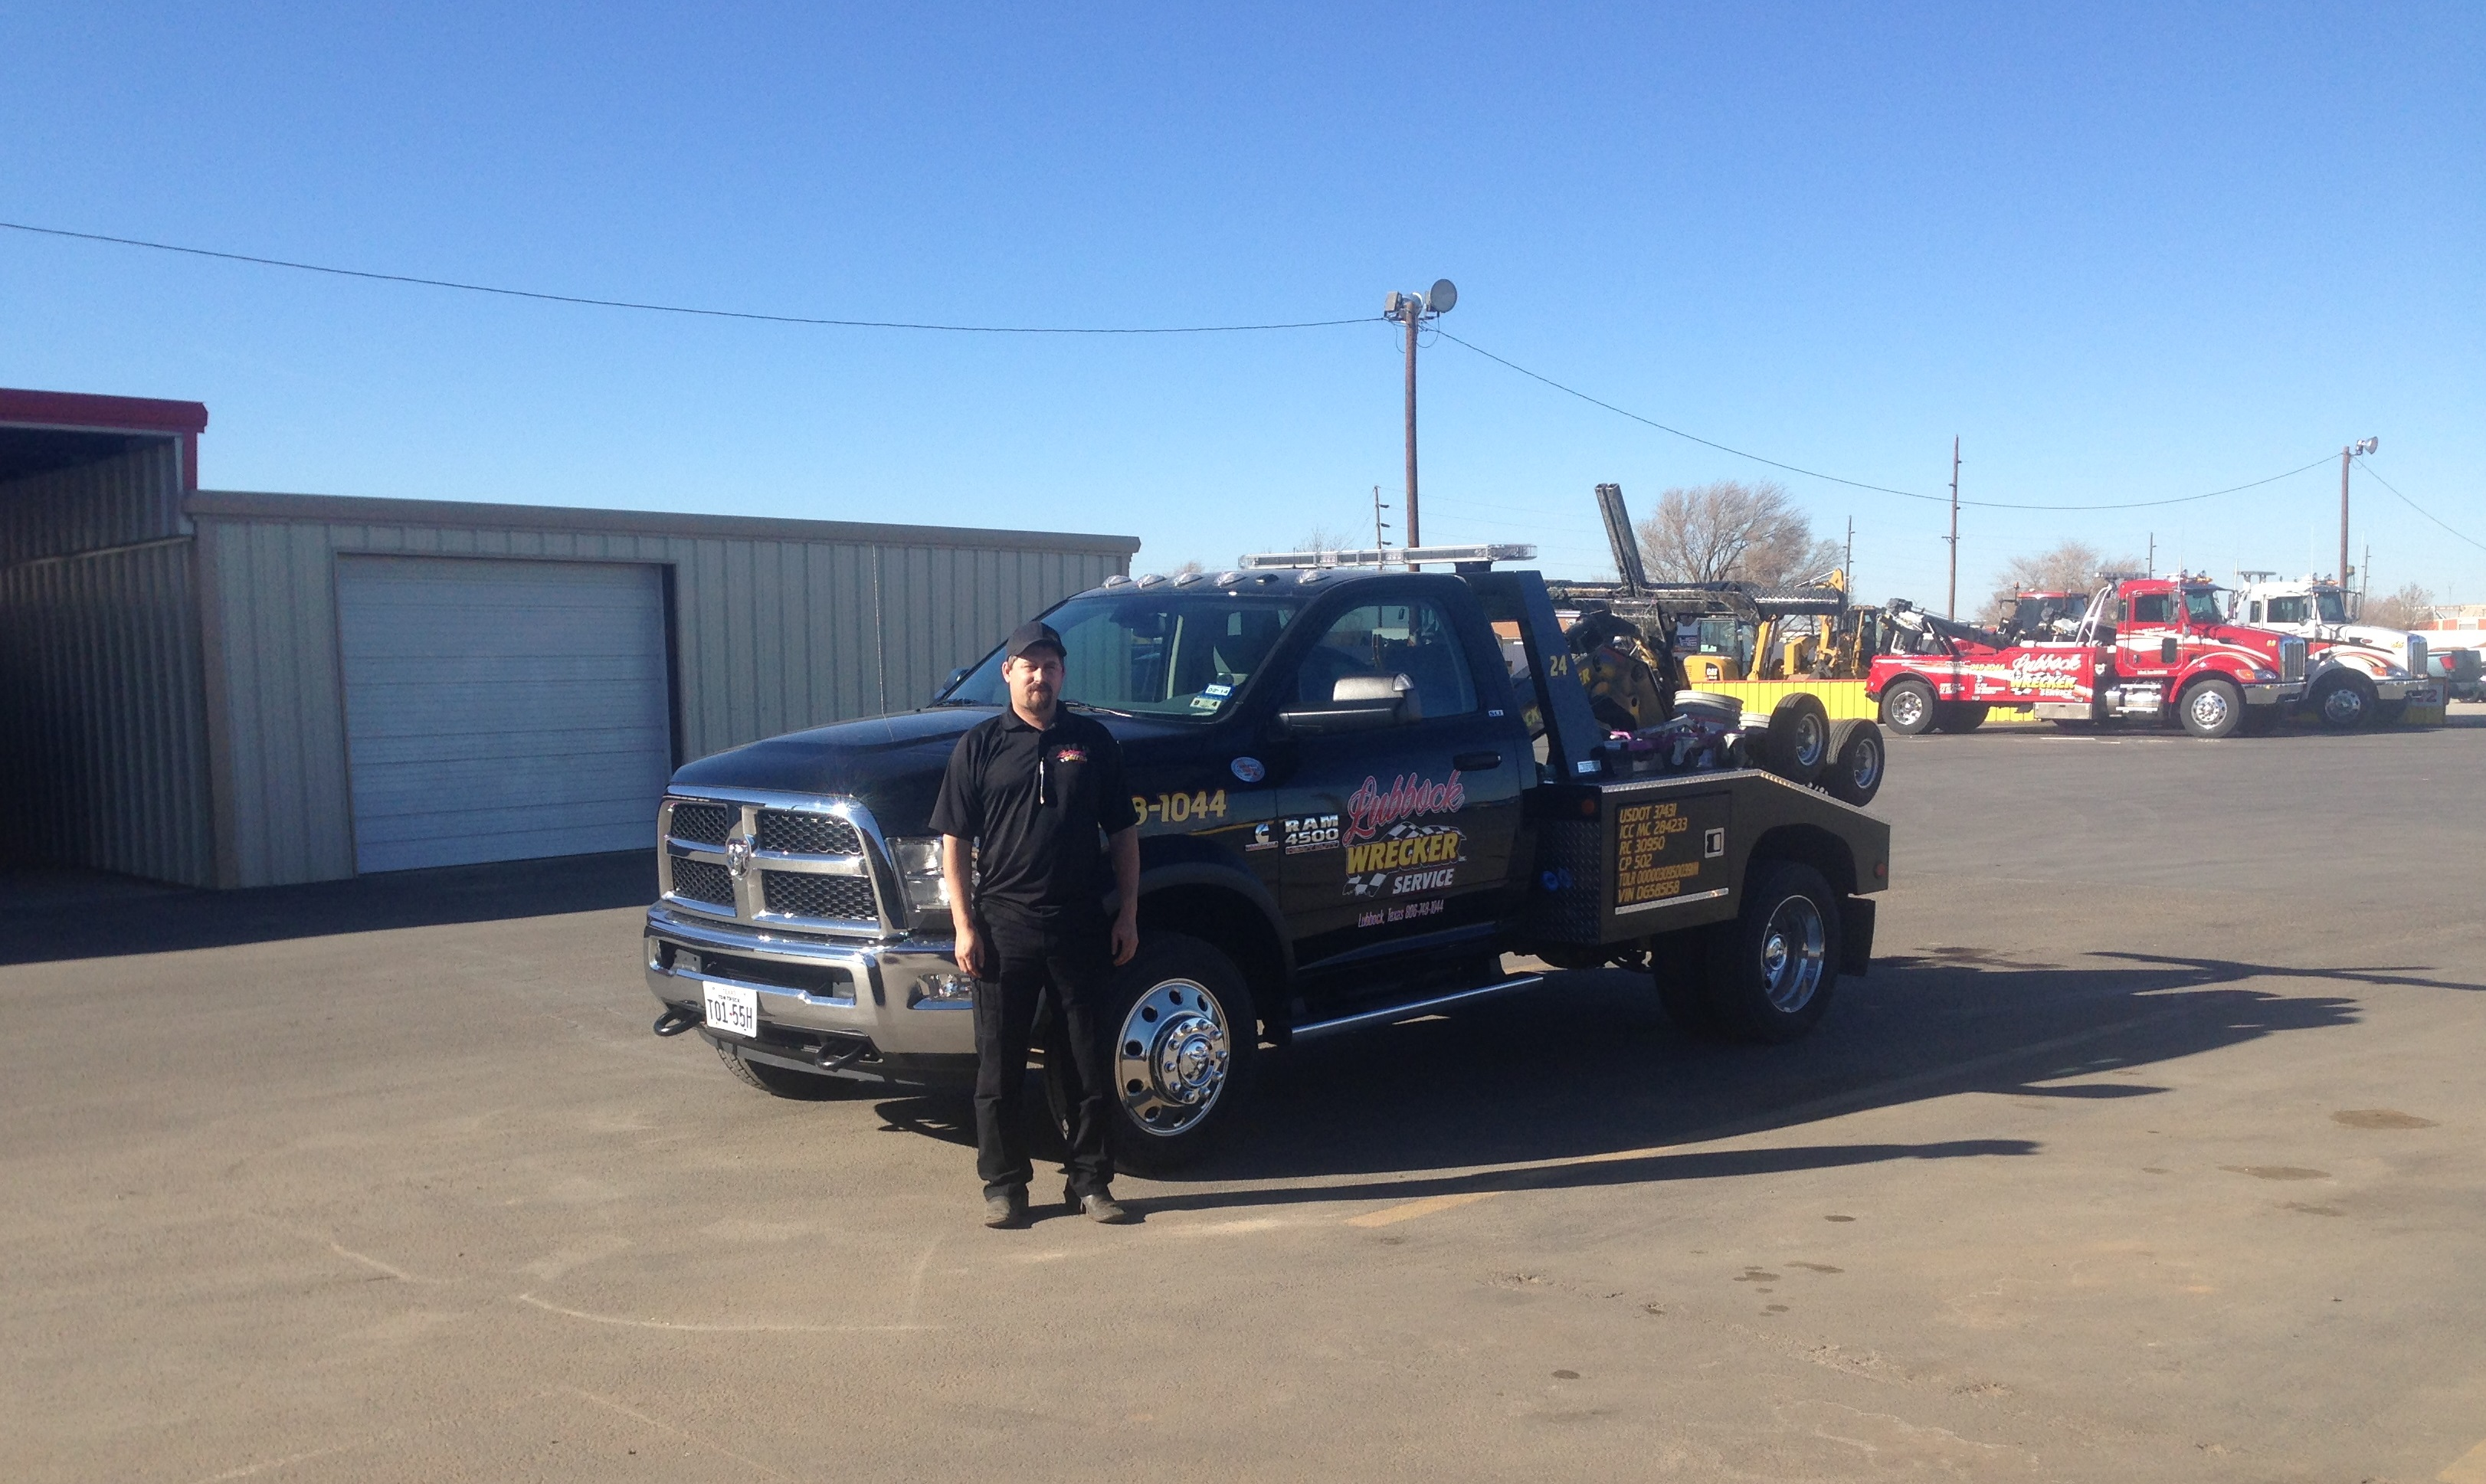 Home | Lubbock Wrecker | Lubbock | Snyder | Towing